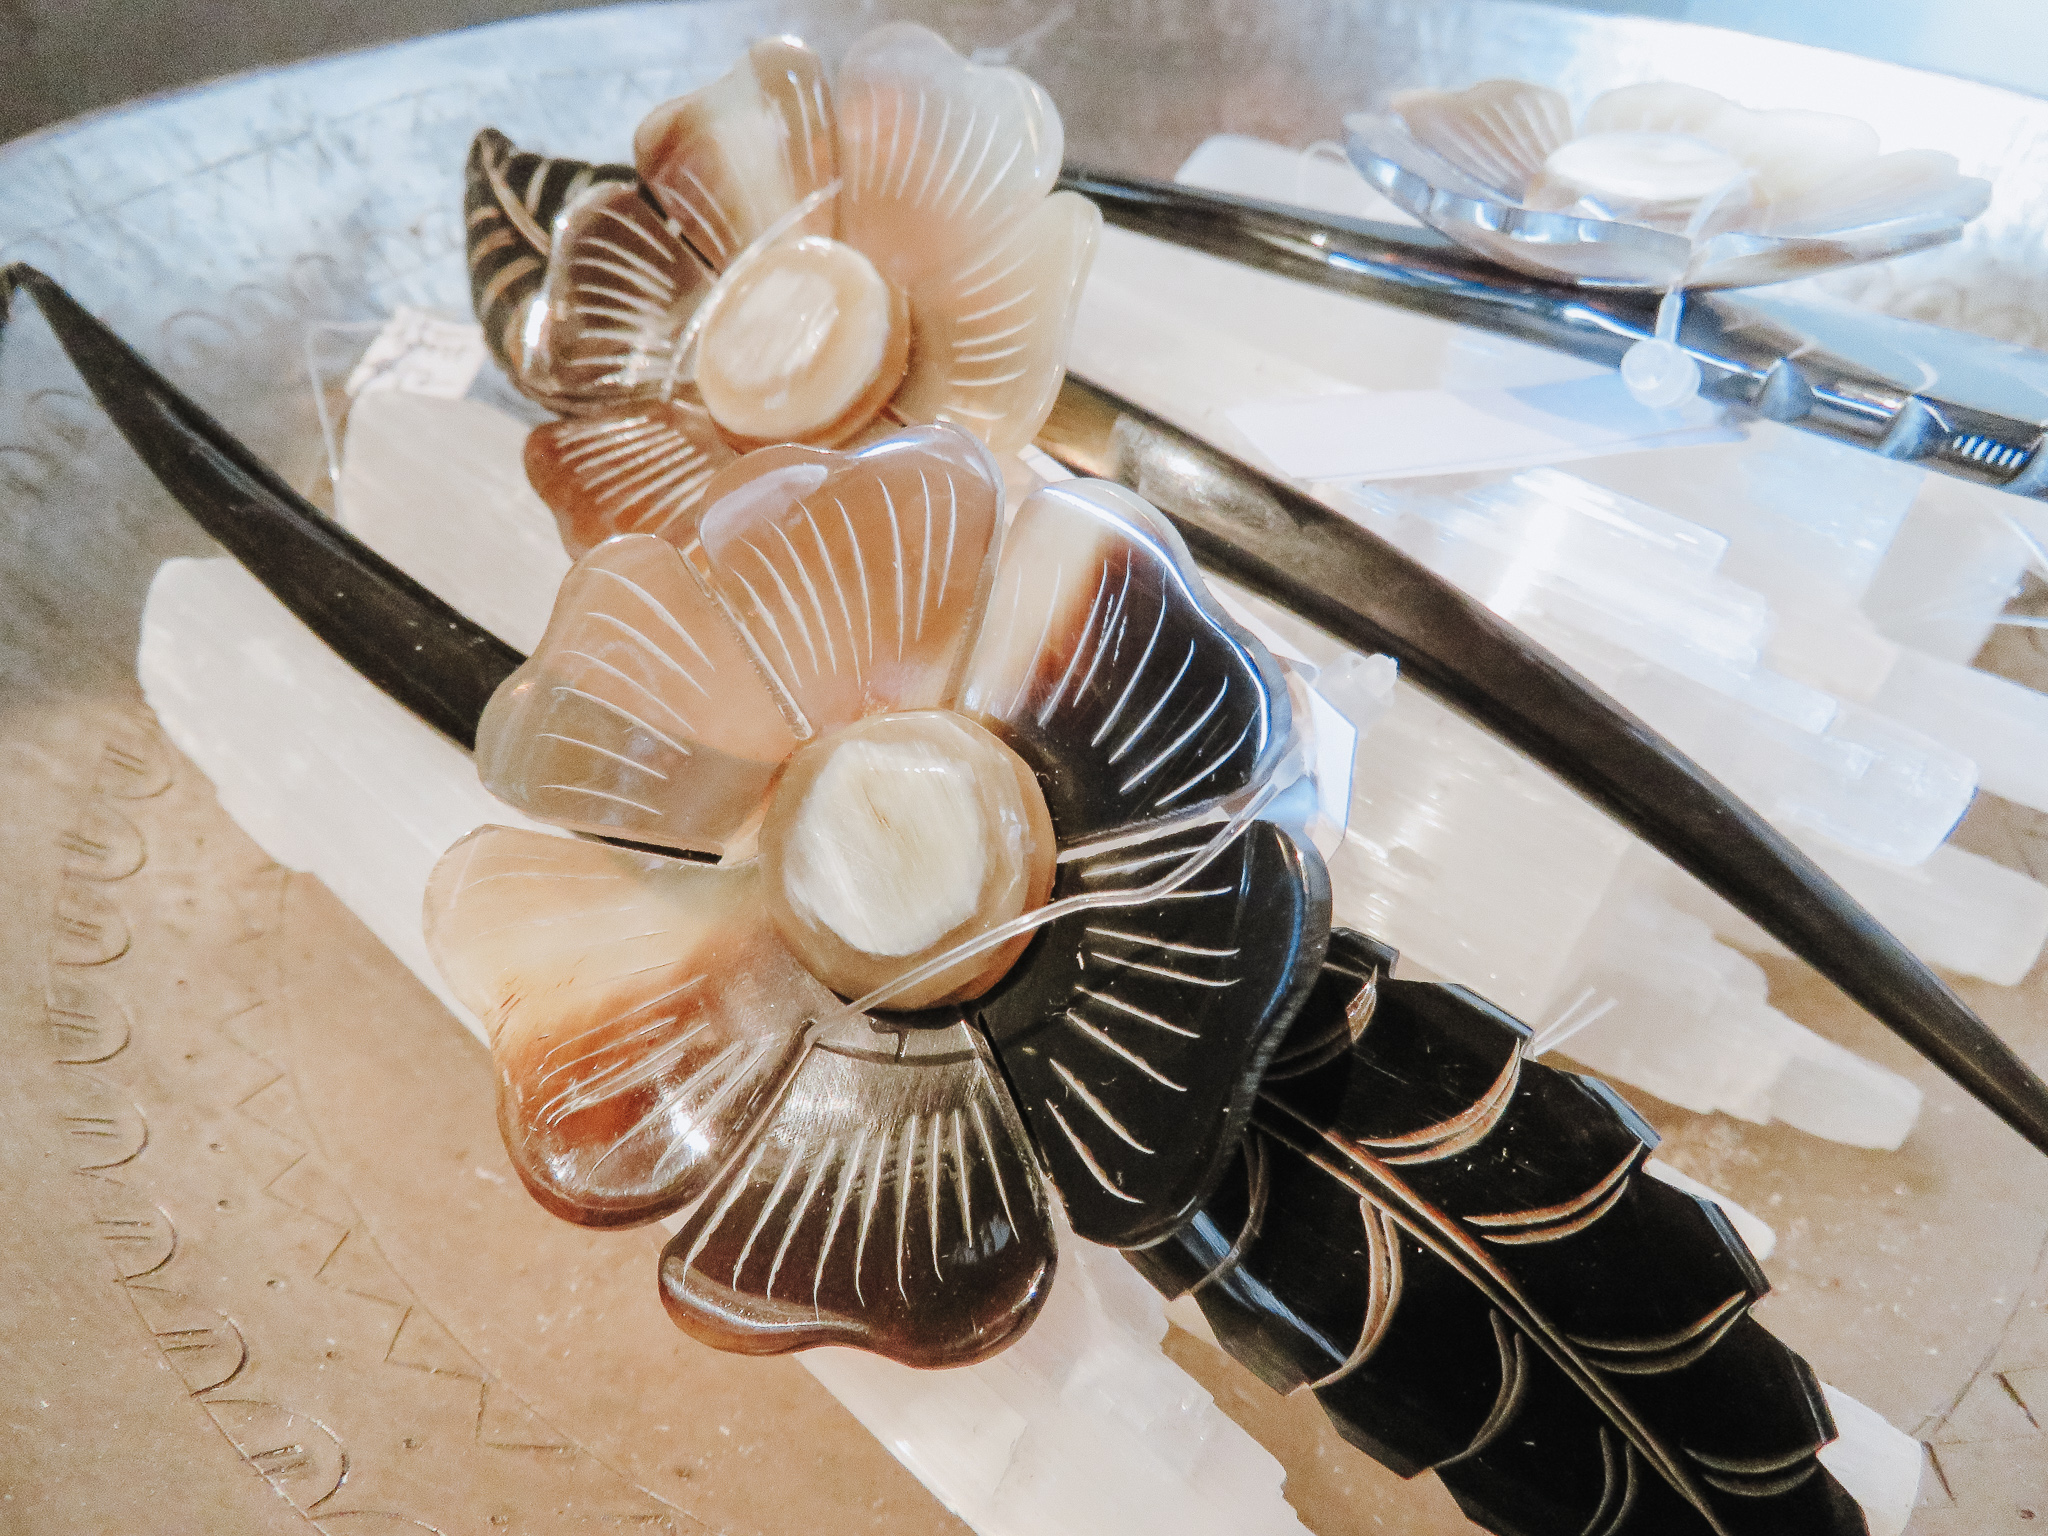 Accessorize - These carved horn hair pins are a fun accessory to give as a gift. A great option if you're on a budget!